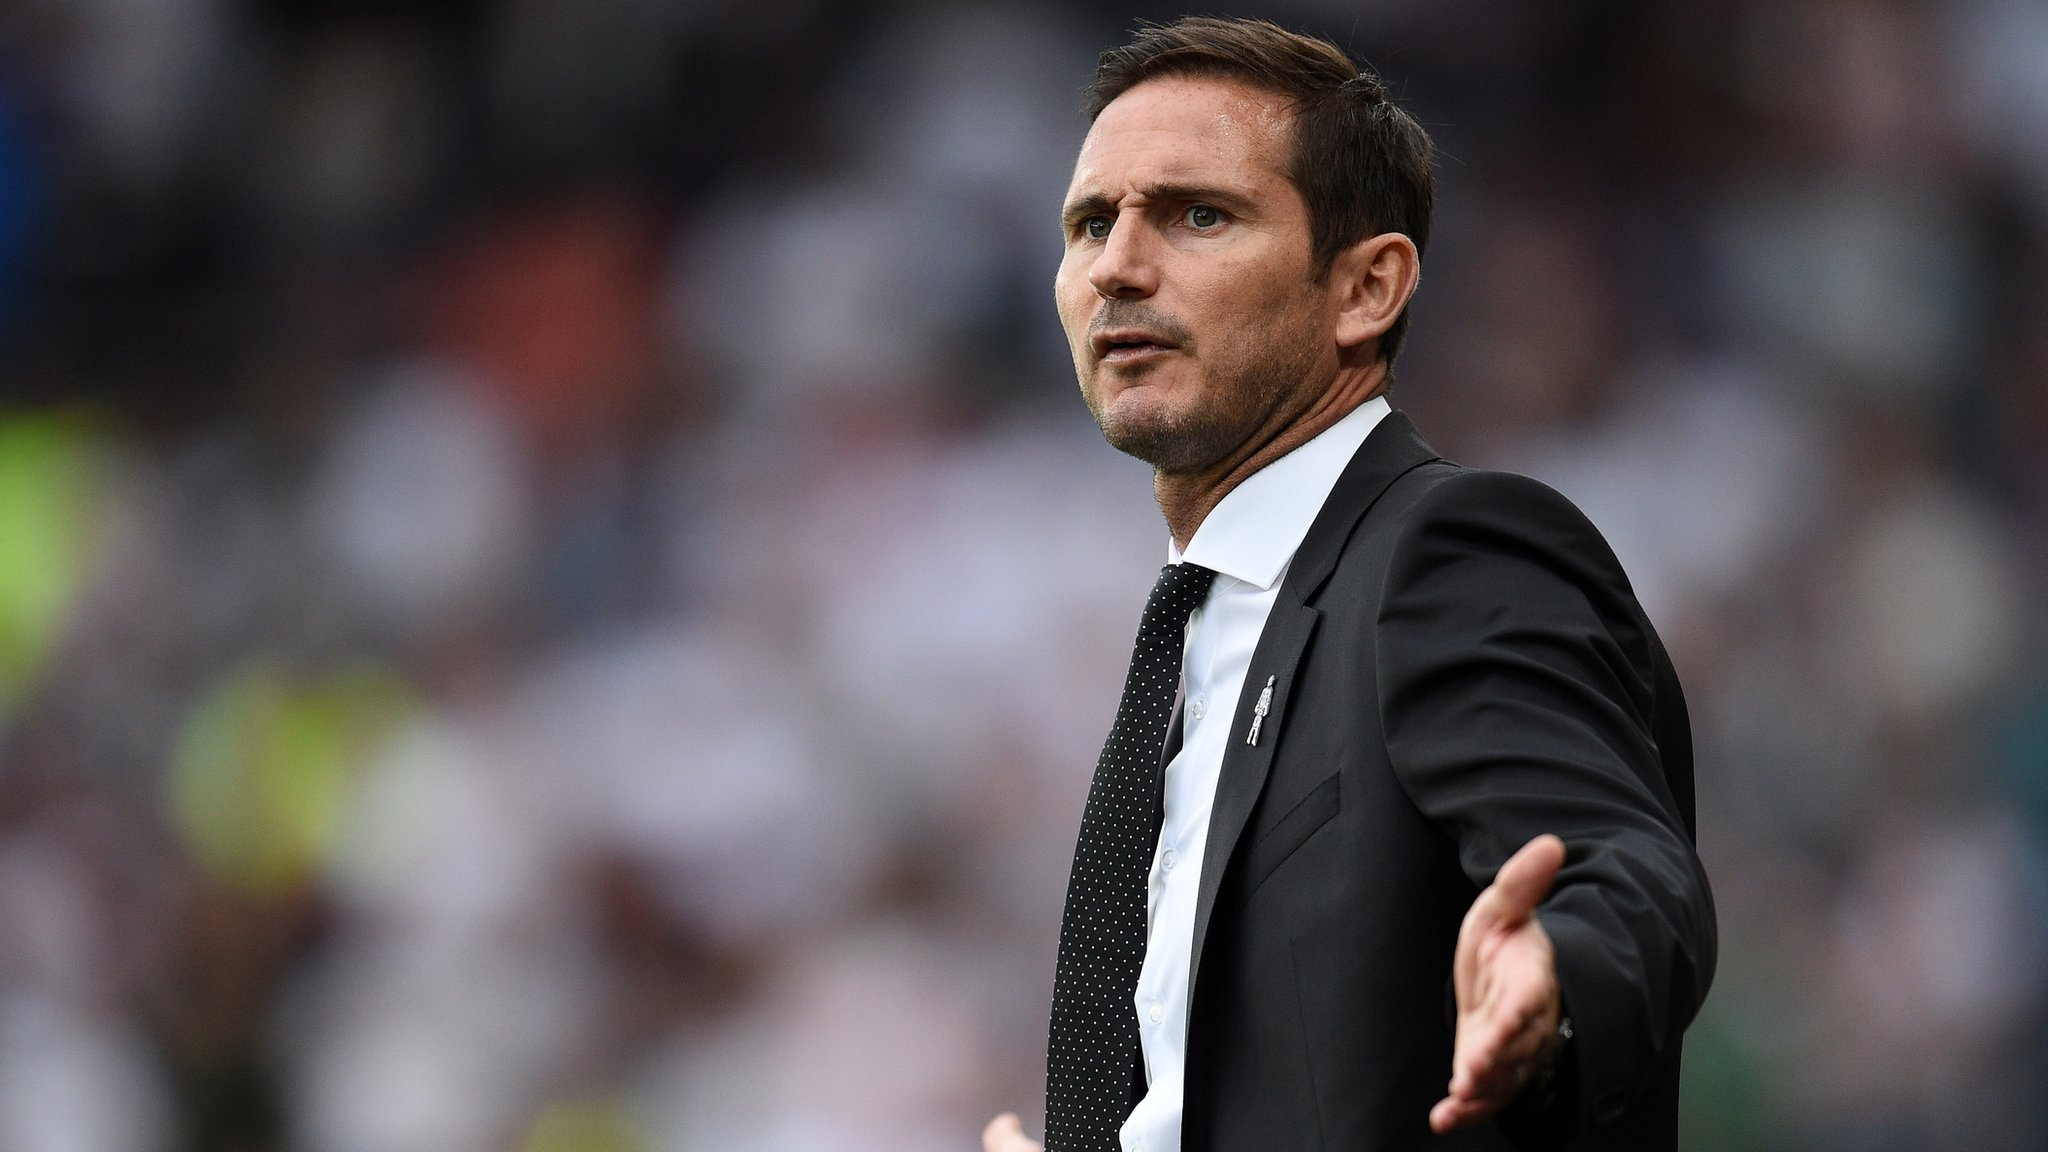 Frank Lampard: Derby County manager fined by FA for improper conduct